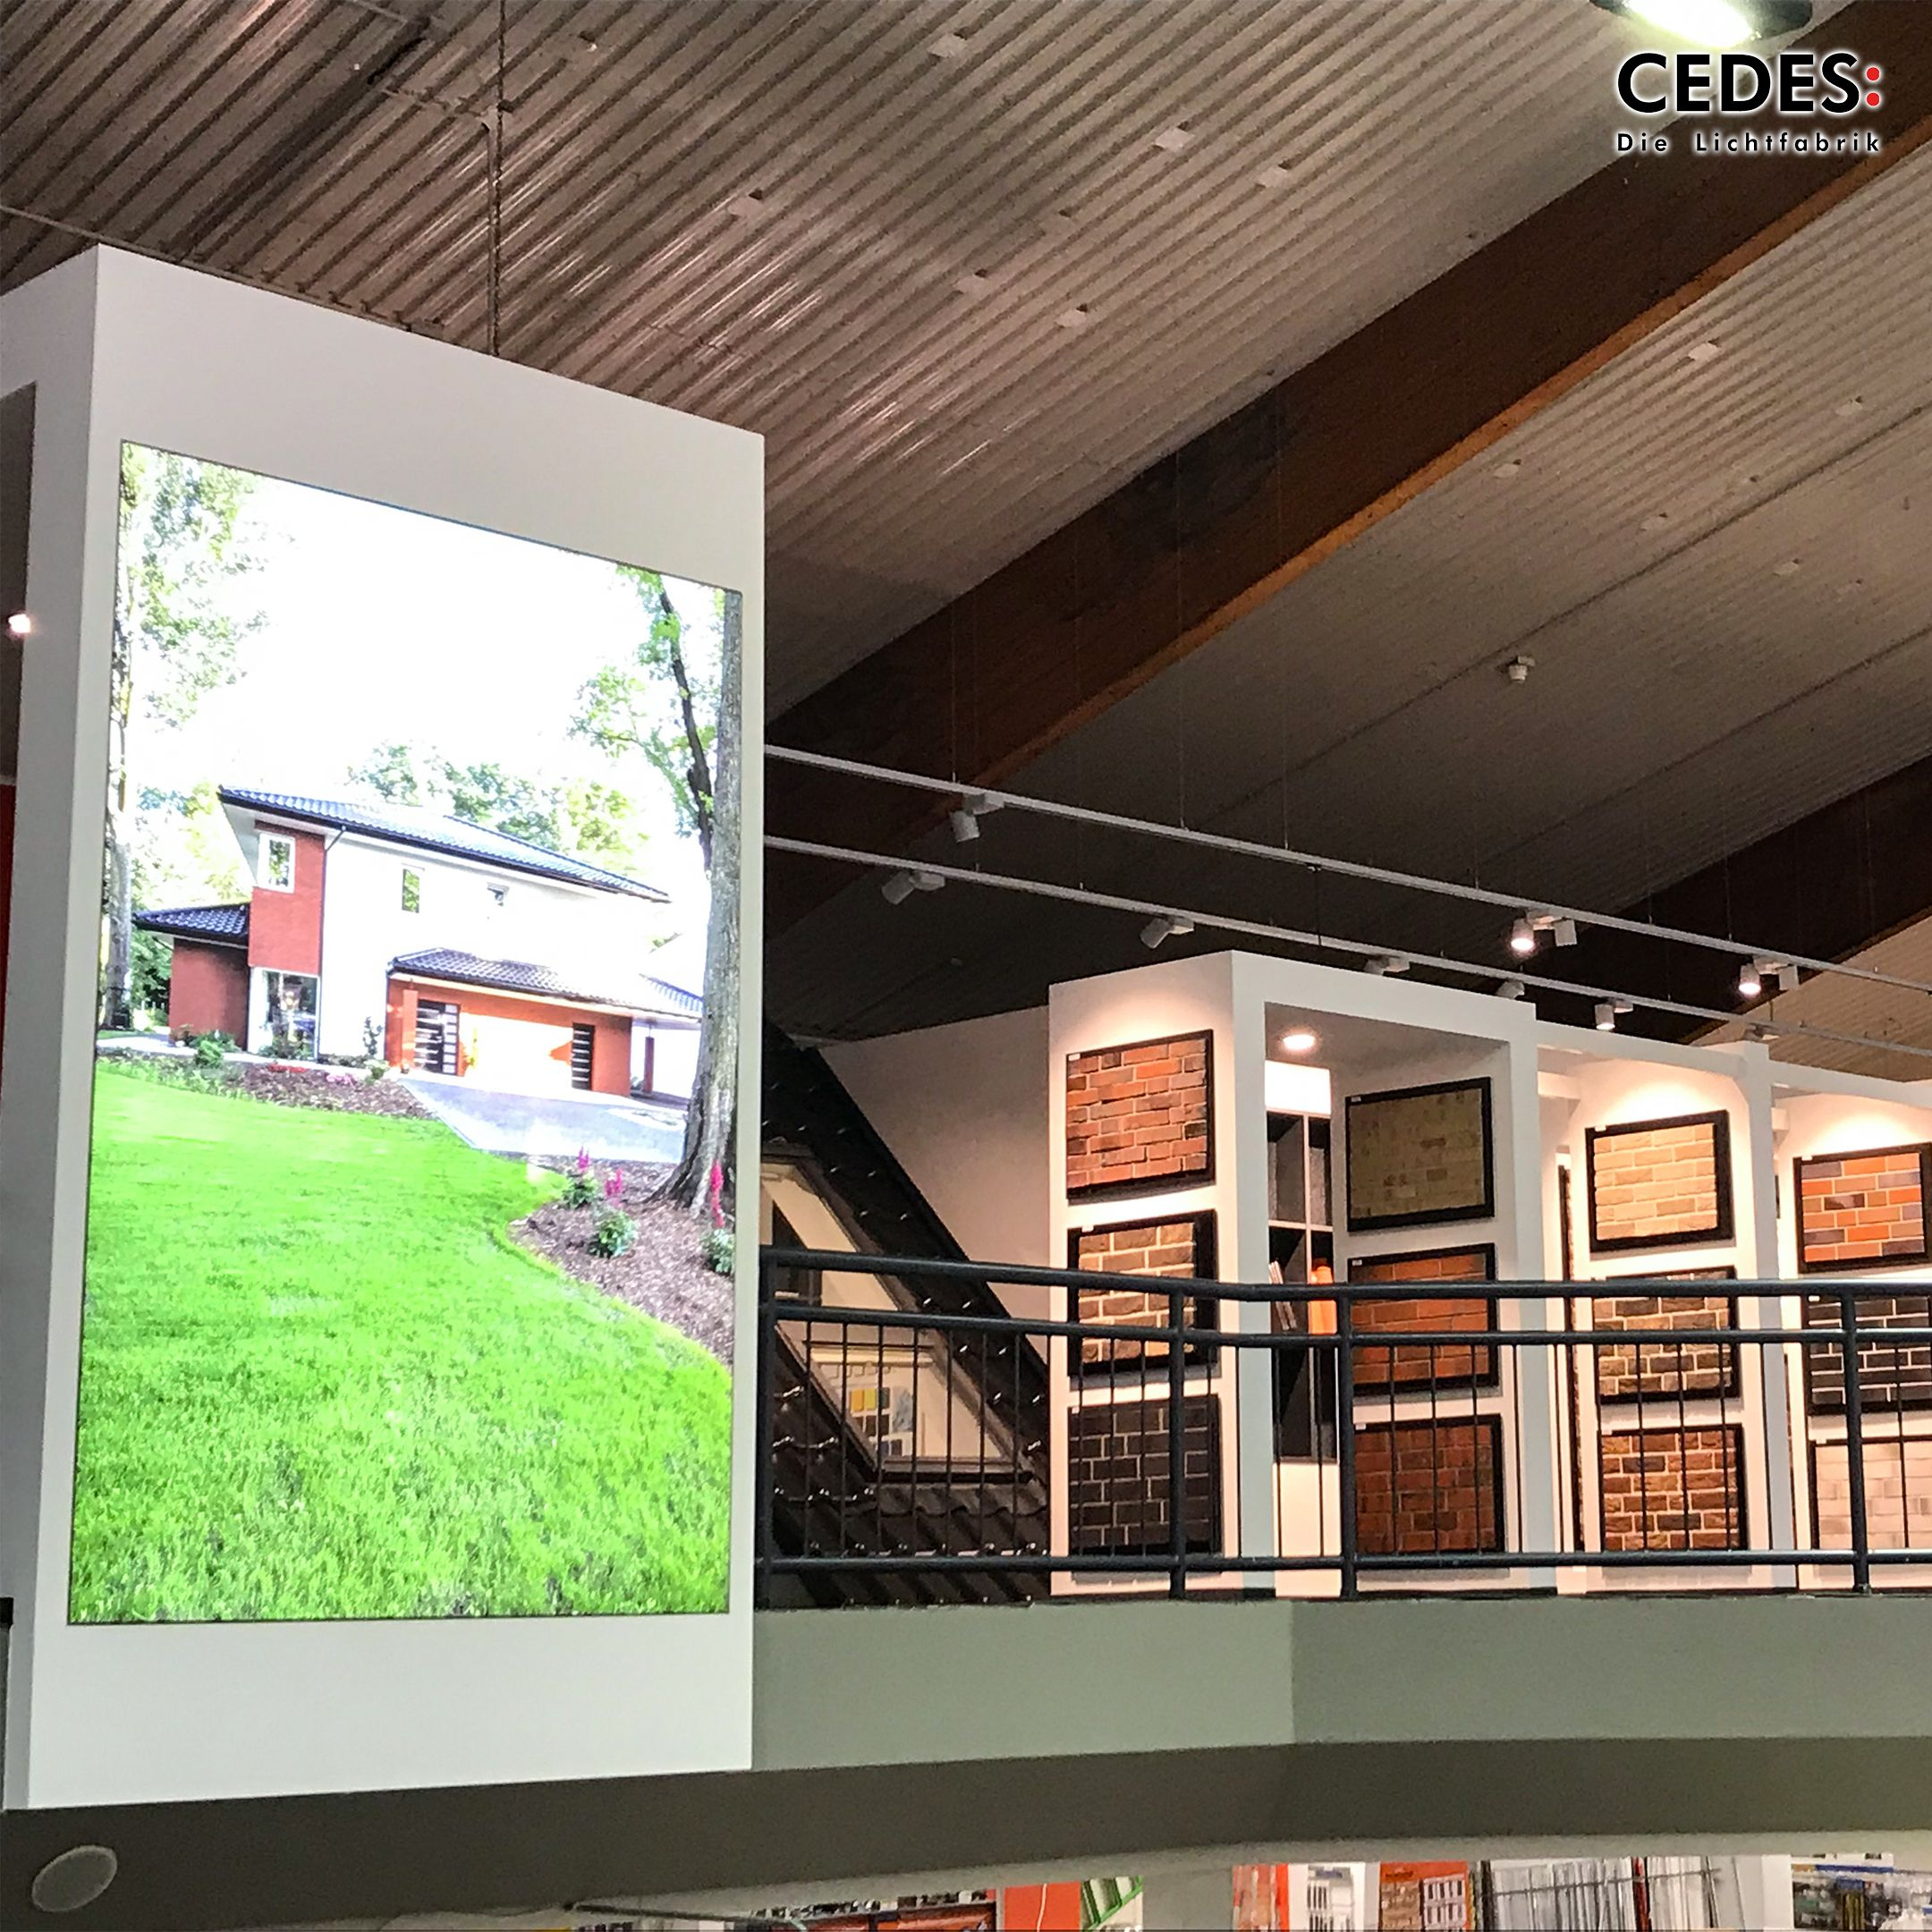 How Customers Know Where To Go Smart Led Light Frames Provide Guidance Innenarchitektur Beleuchtung Lichtplanung